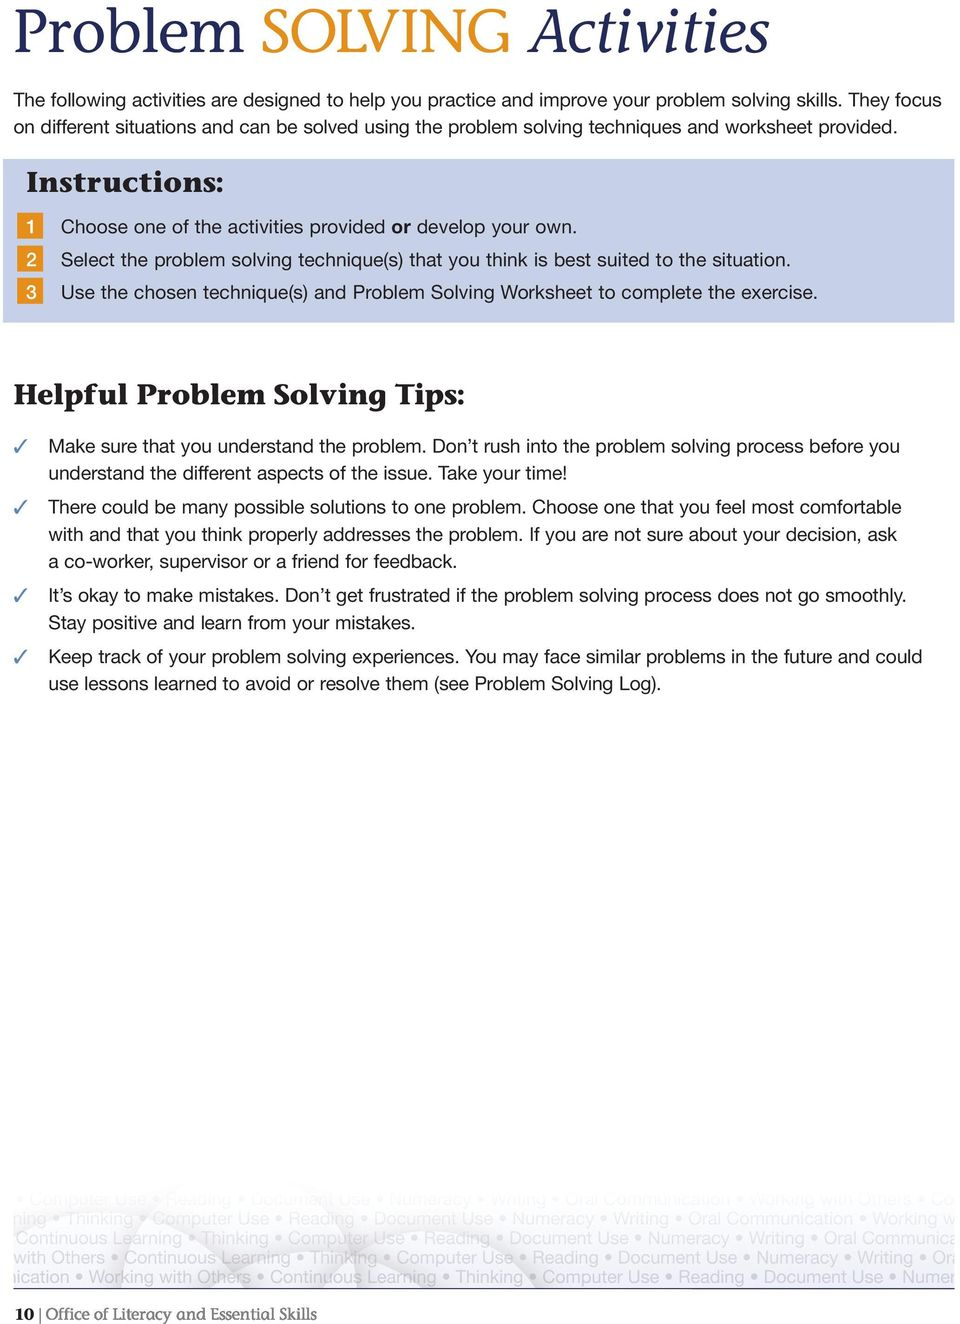 2 Select the problem solving technique(s) that you think is best suited to the situation. 3 Use the chosen technique(s) and Problem Solving Worksheet to complete the exercise.